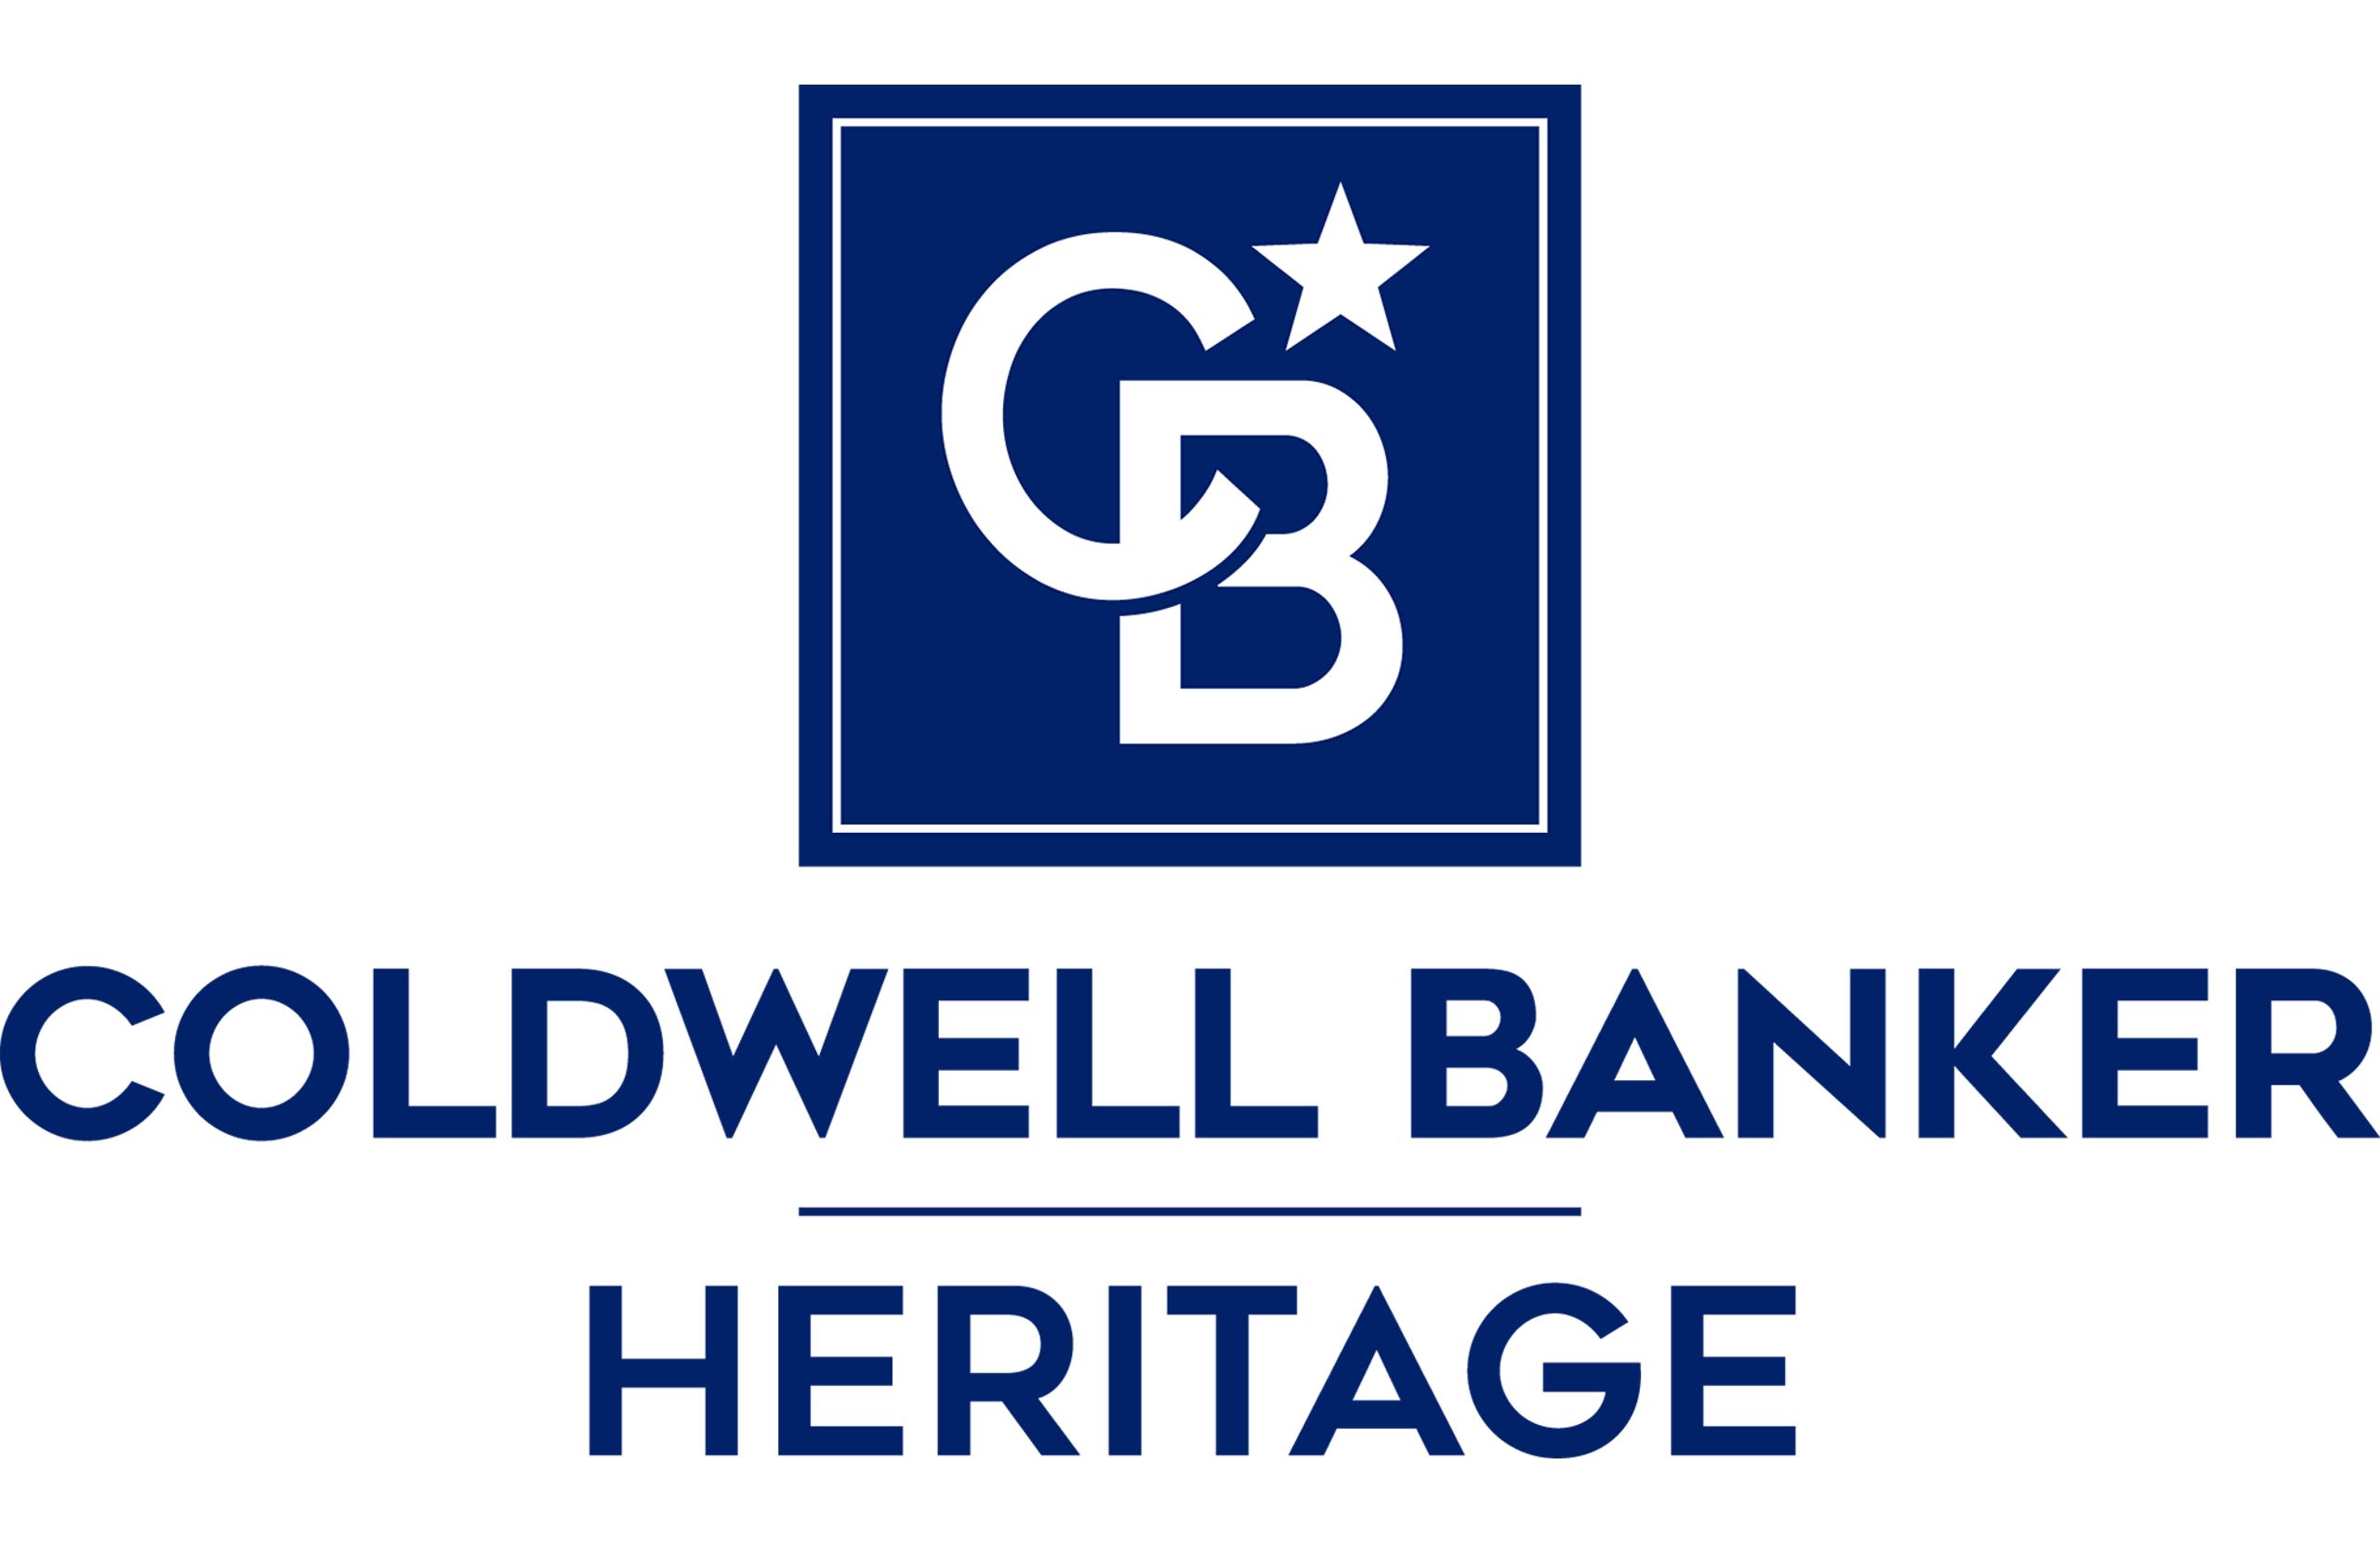 Jacob Childers - Coldwell Banker Heritage